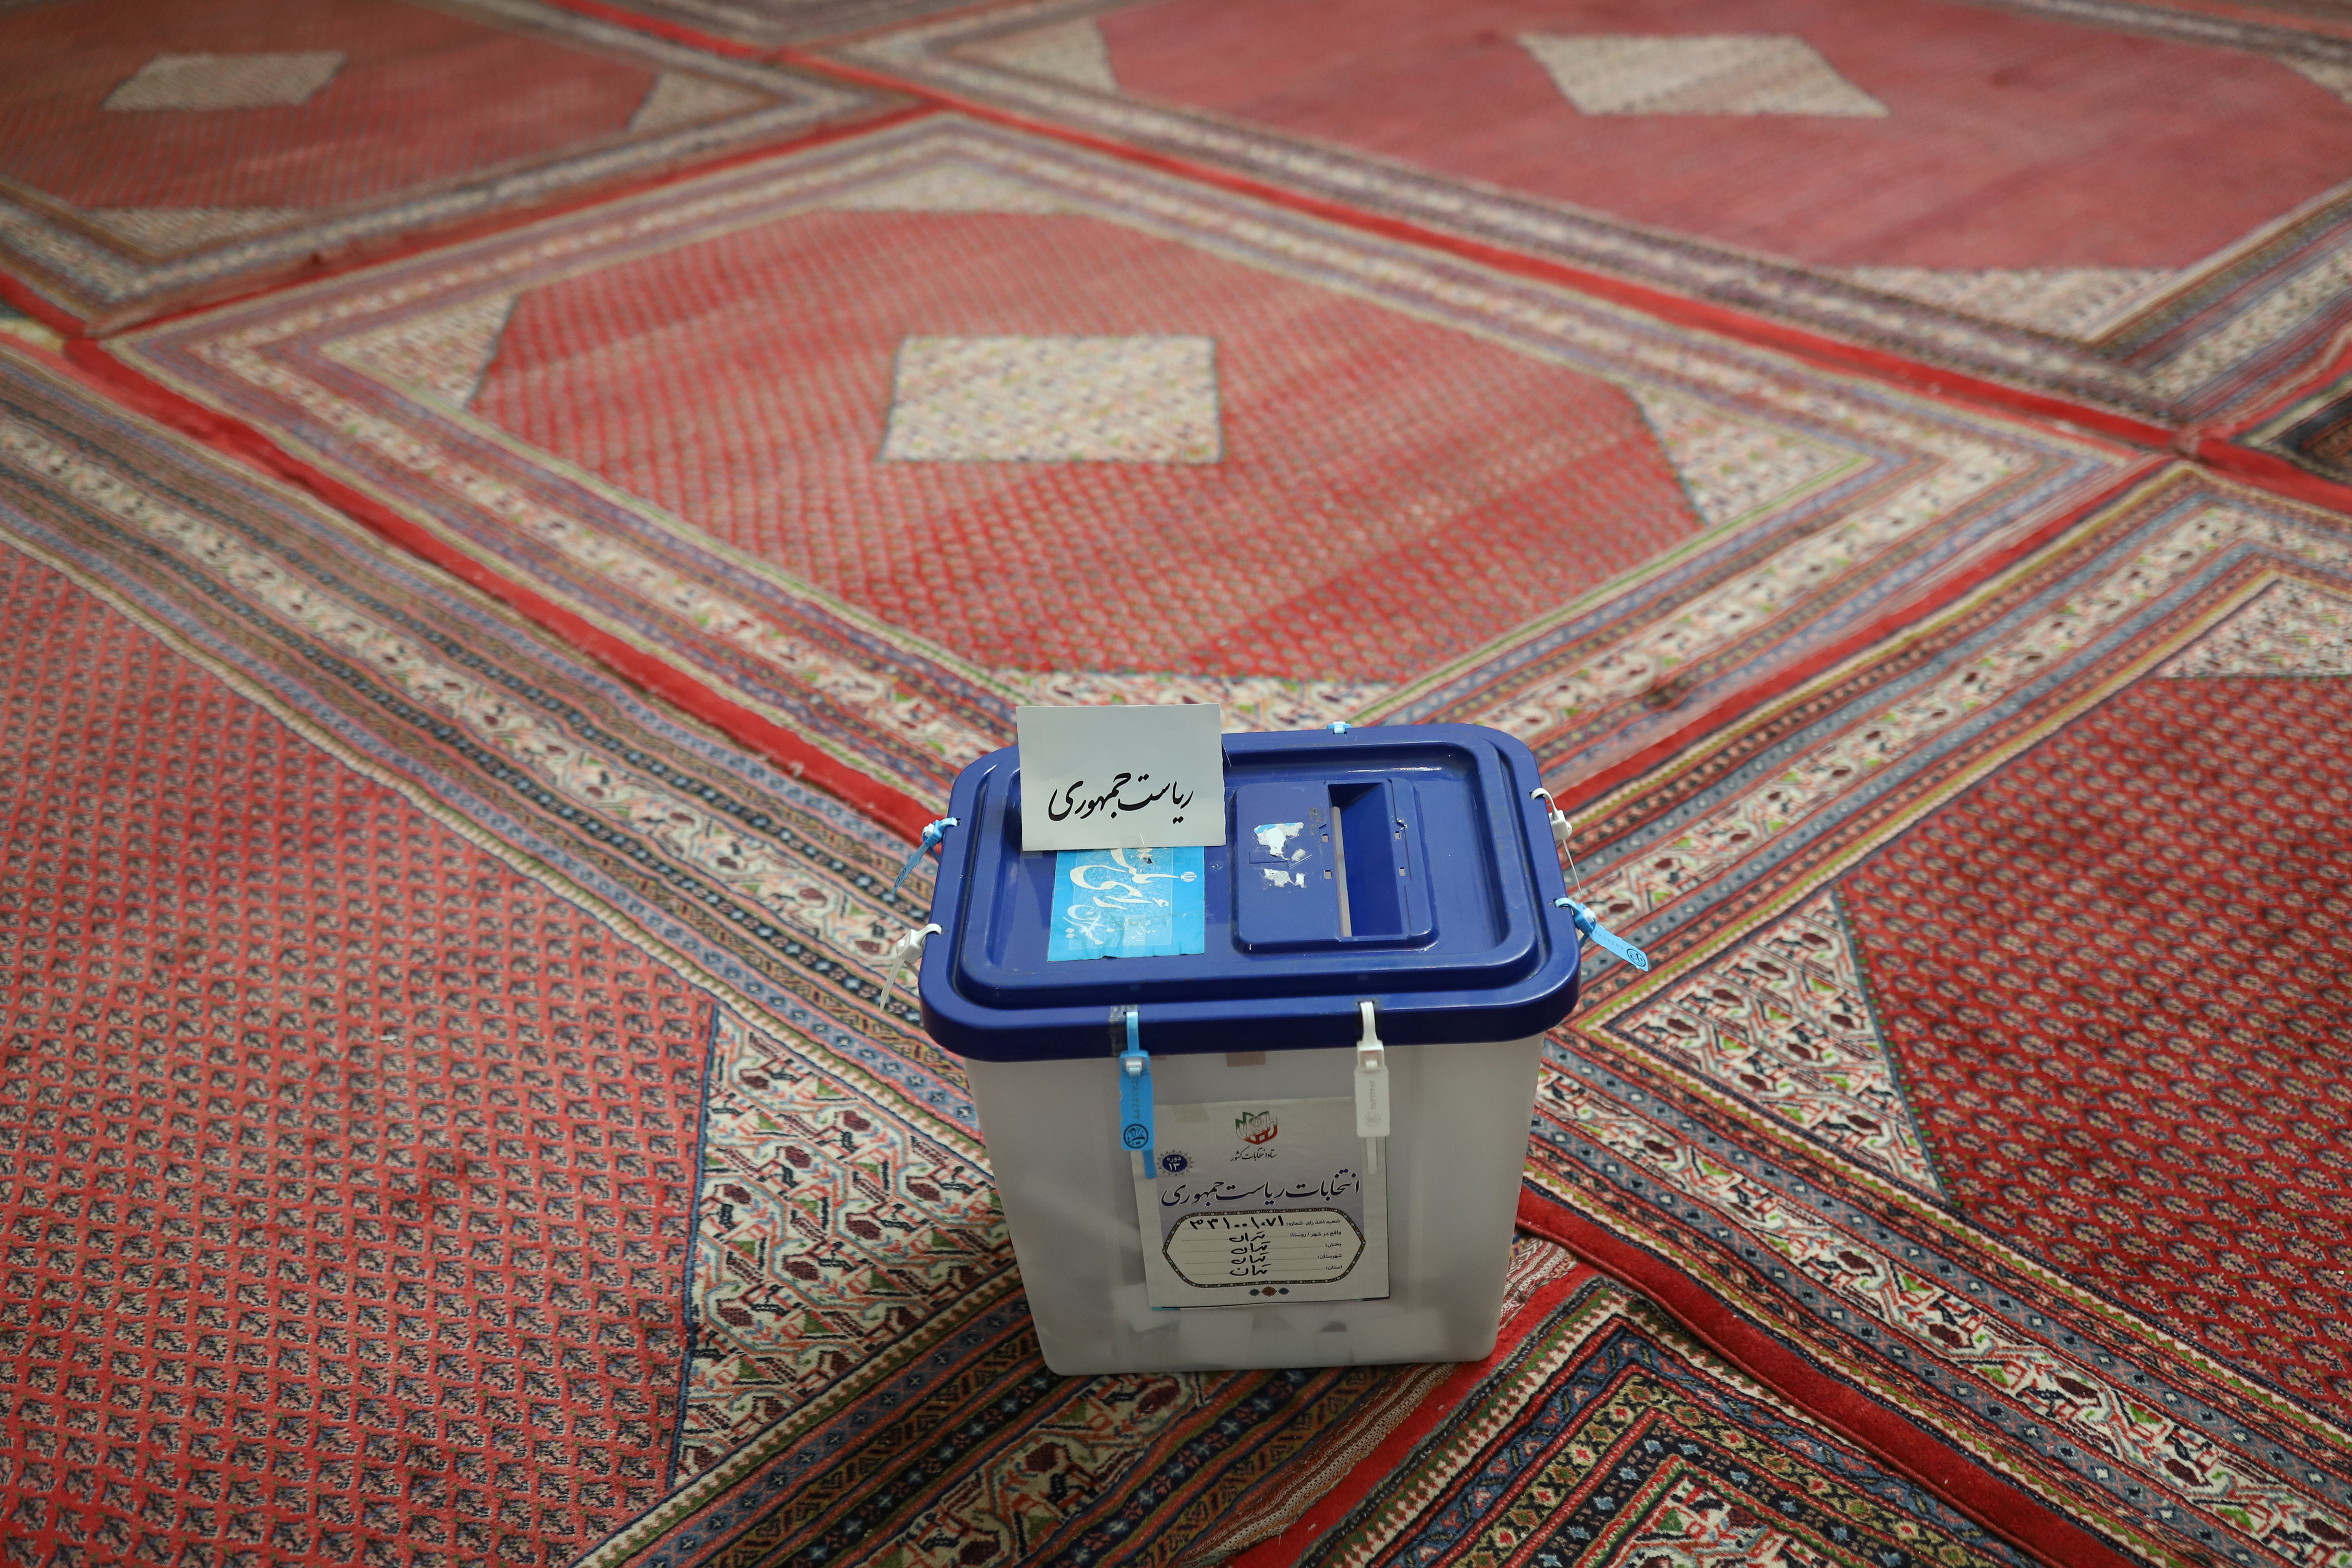 A ballot box is seen at a polling station after voting ended in the presidential election in Tehran, Iran June 19, 2021. Majid Asgaripour/WANA (West Asia News Agency) via REUTERS